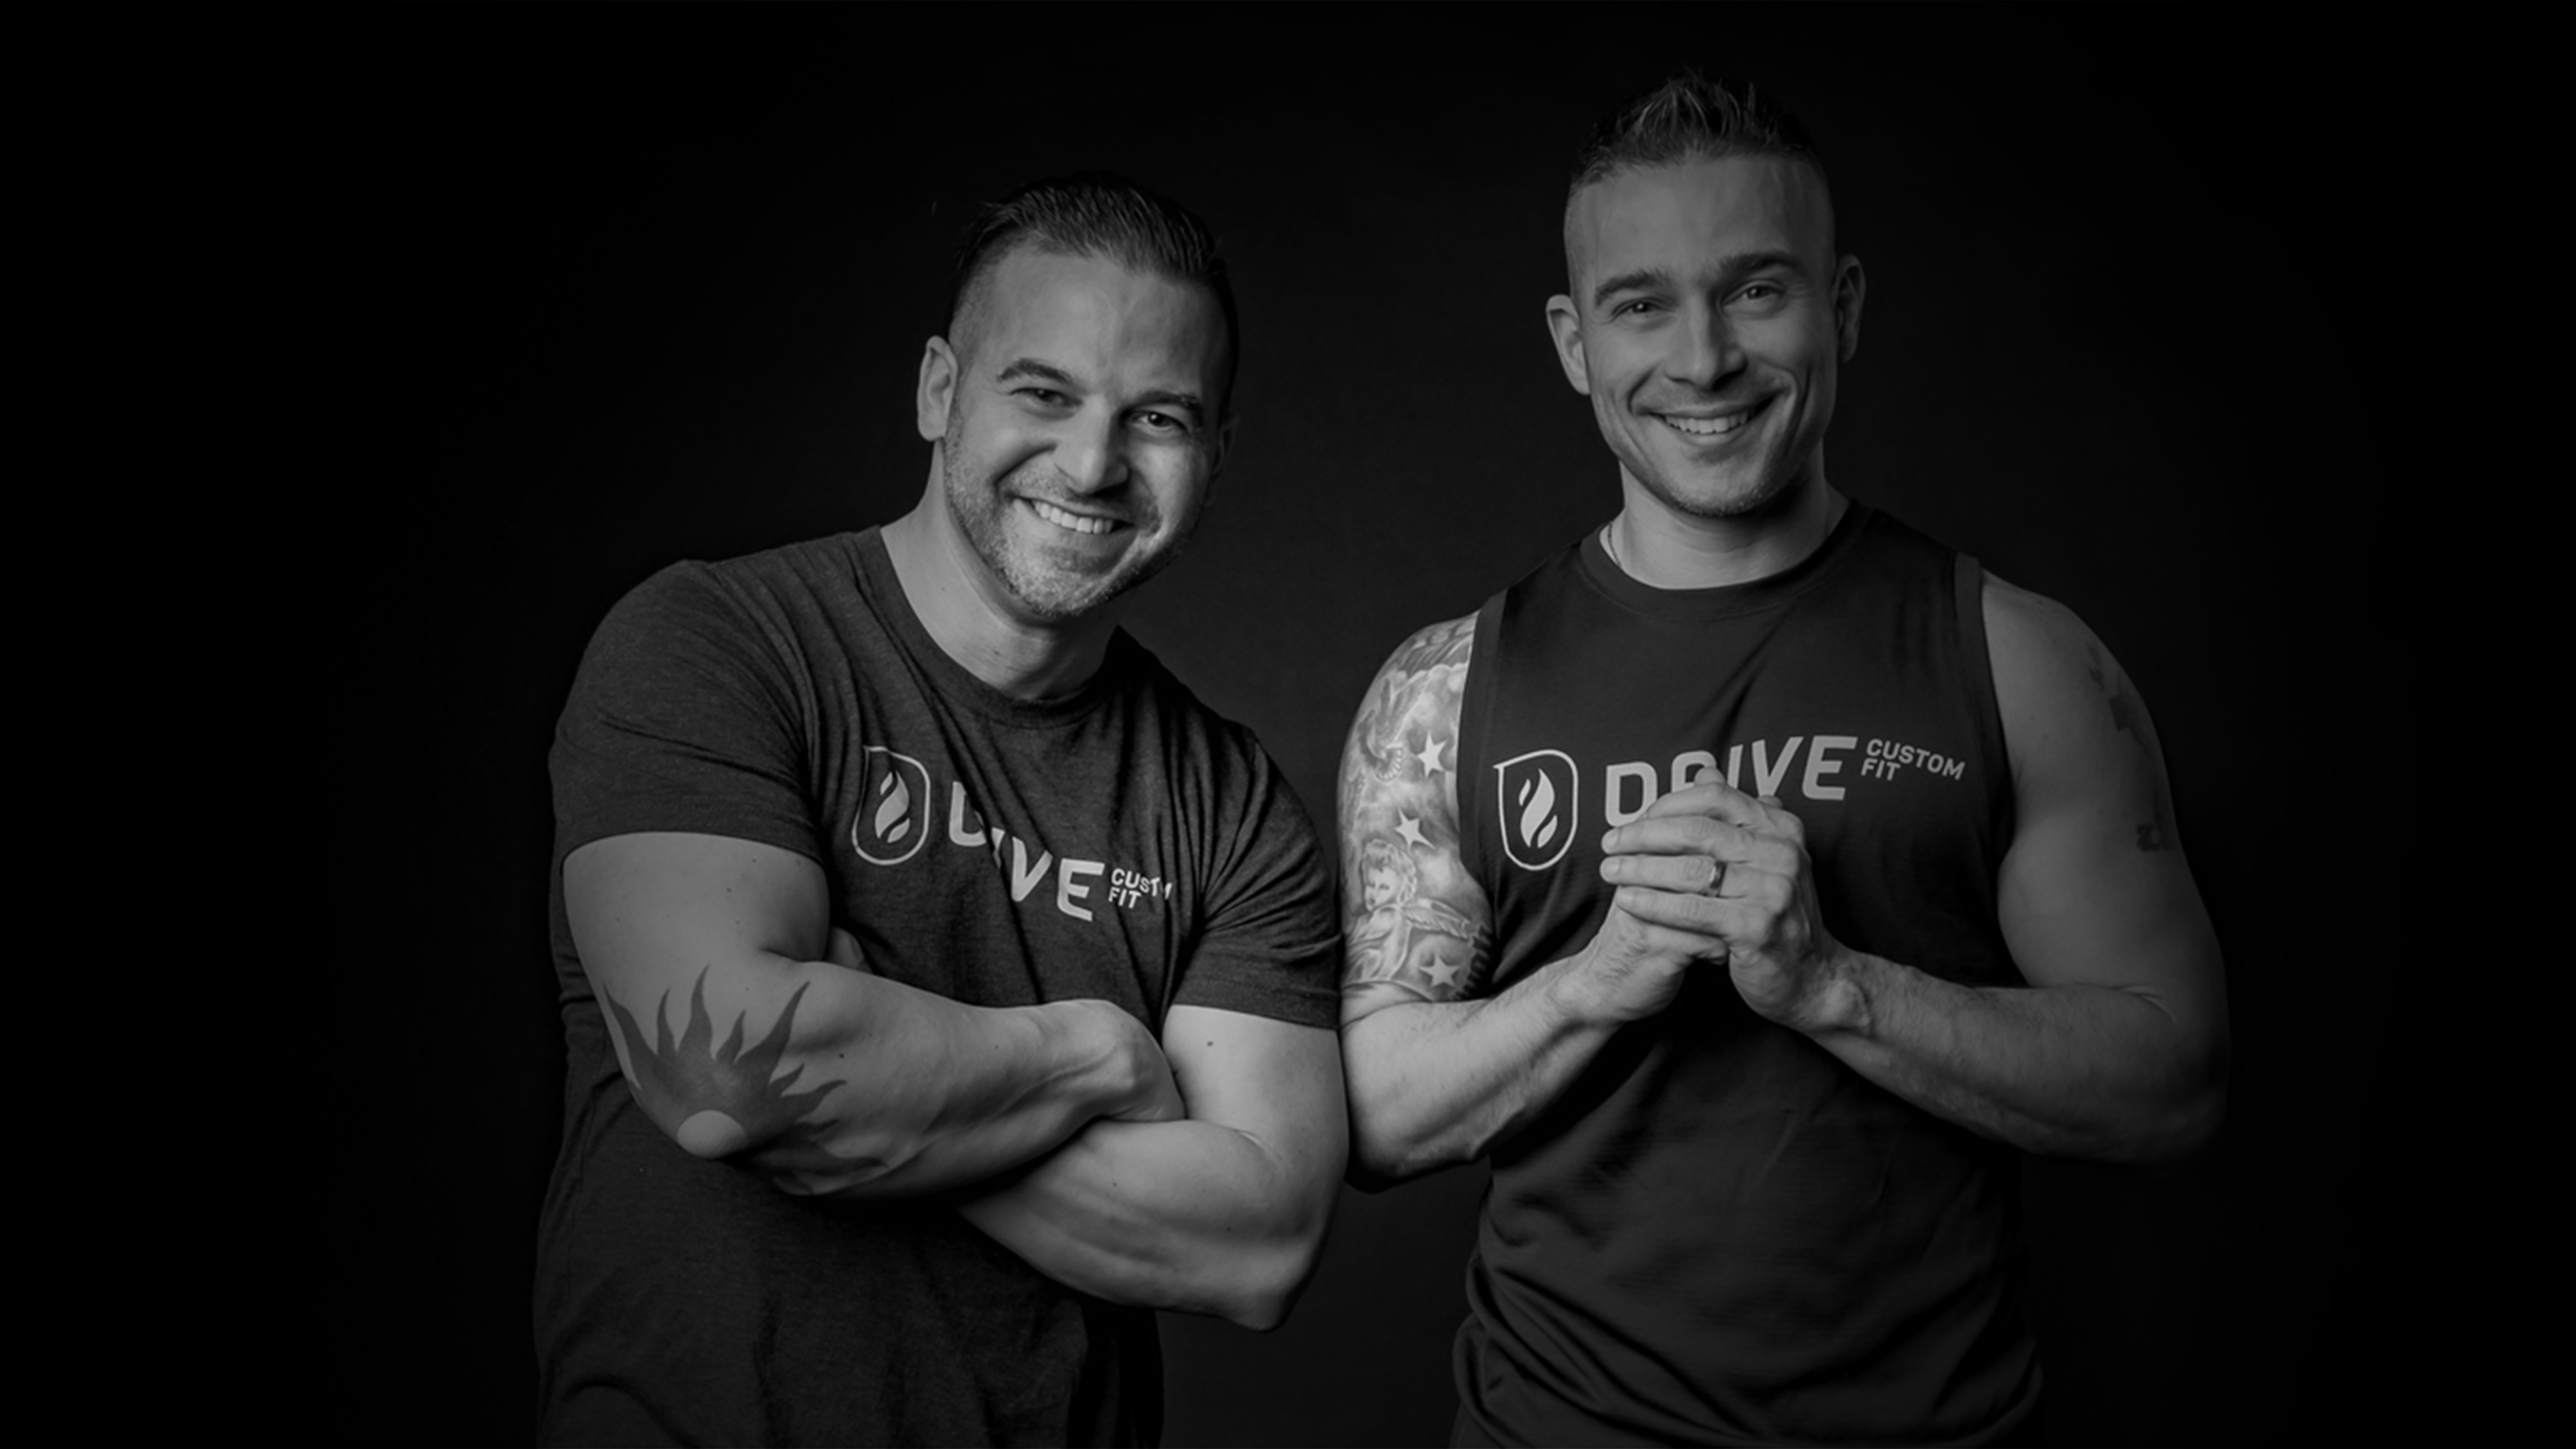 Two men smiling in Drive Custom Fit shirts